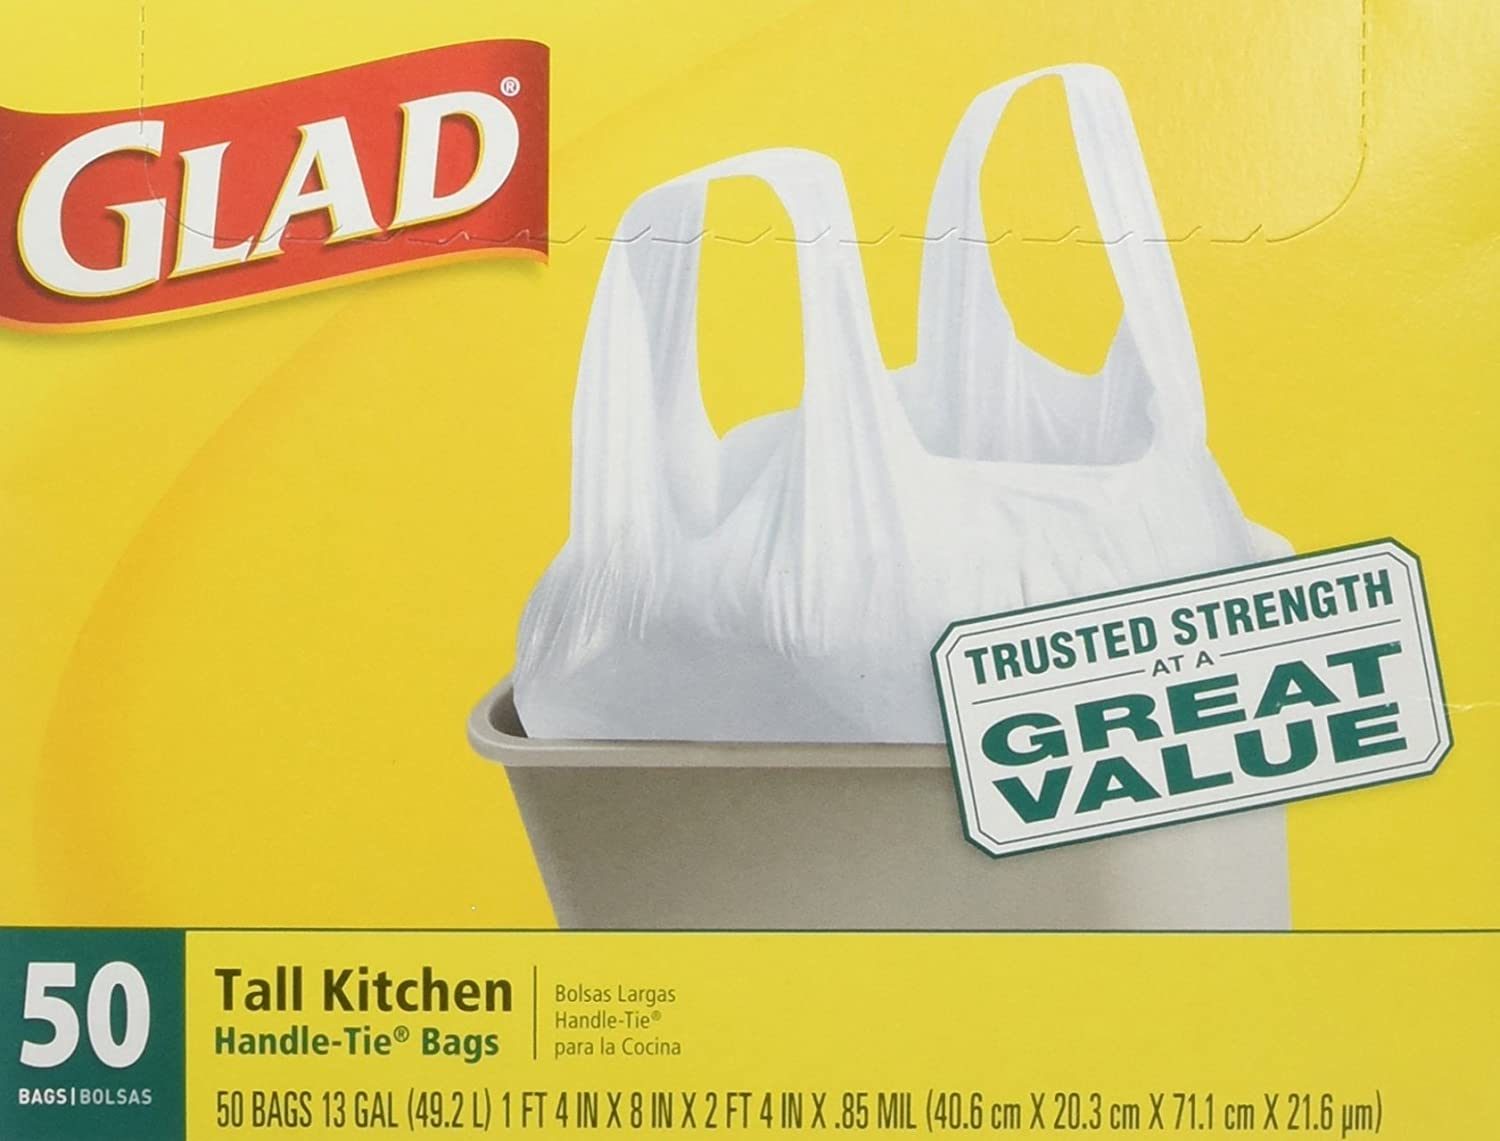 Glad 13 Gal. Tall Kitchen Handle-Tie Bags 50 ct (Pack of 4)